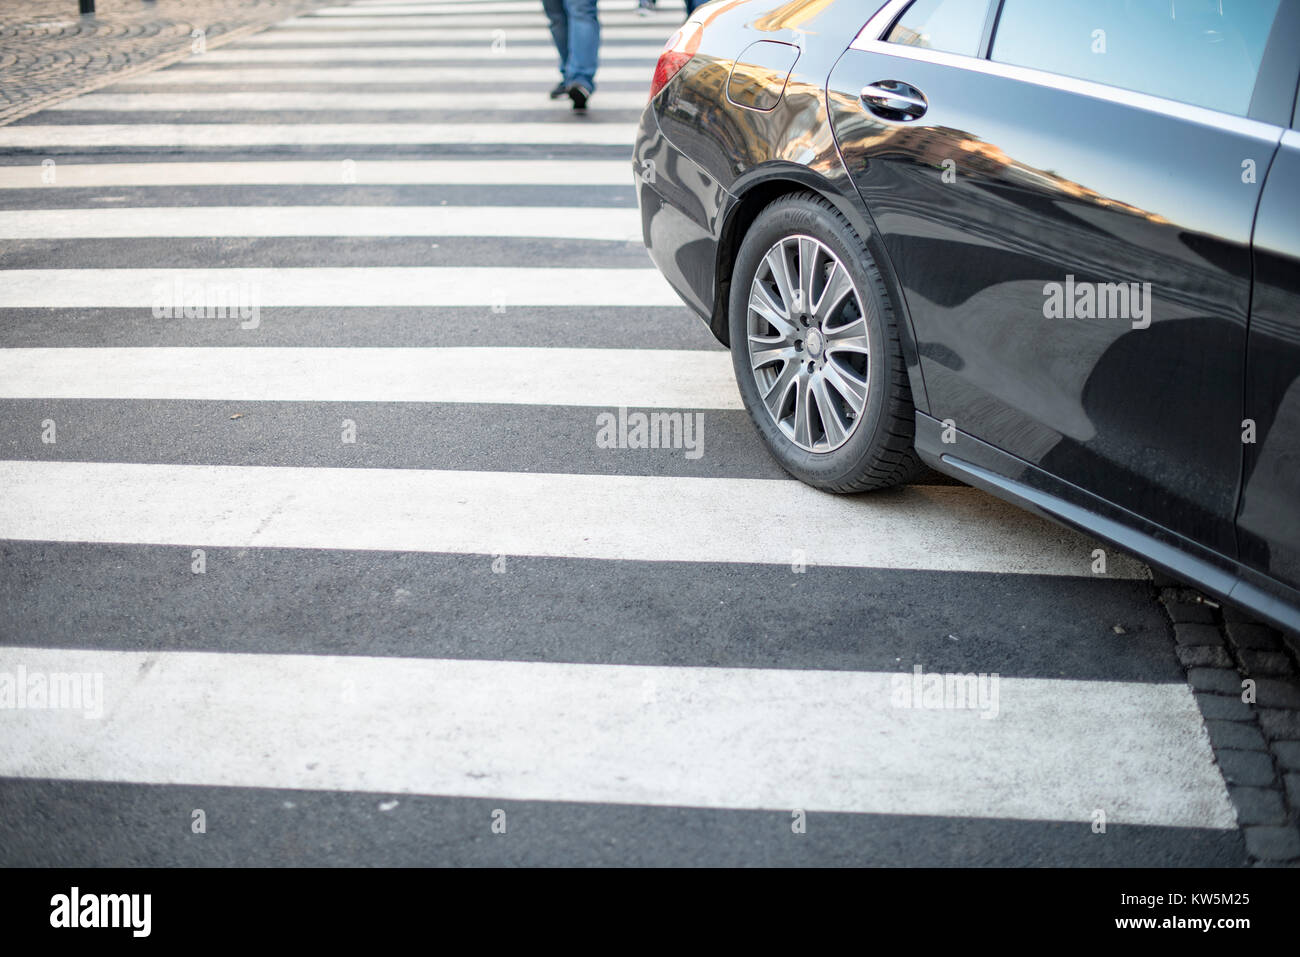 A car partially parked across a zebra crossing - Stock Image